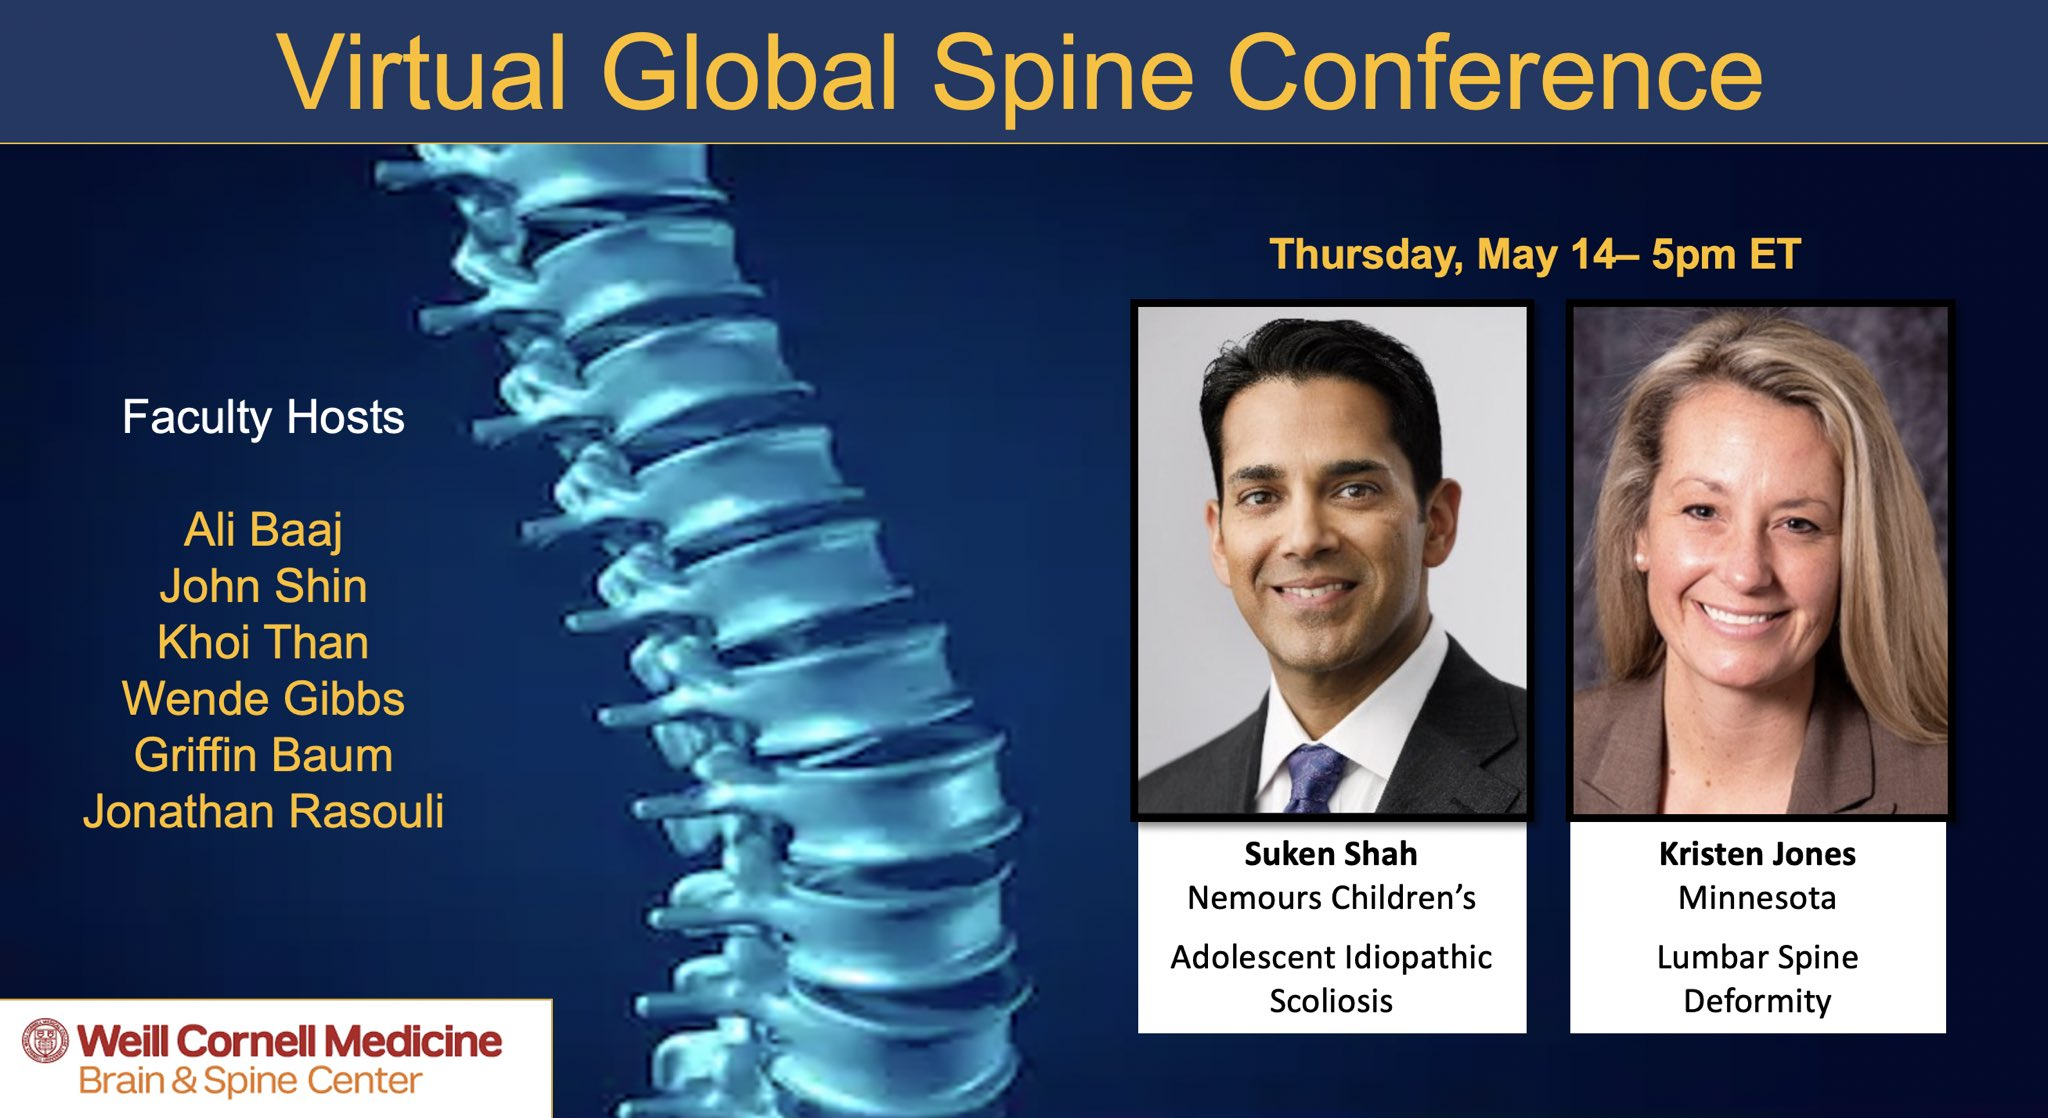 Virtual Global Spine Conference 2020